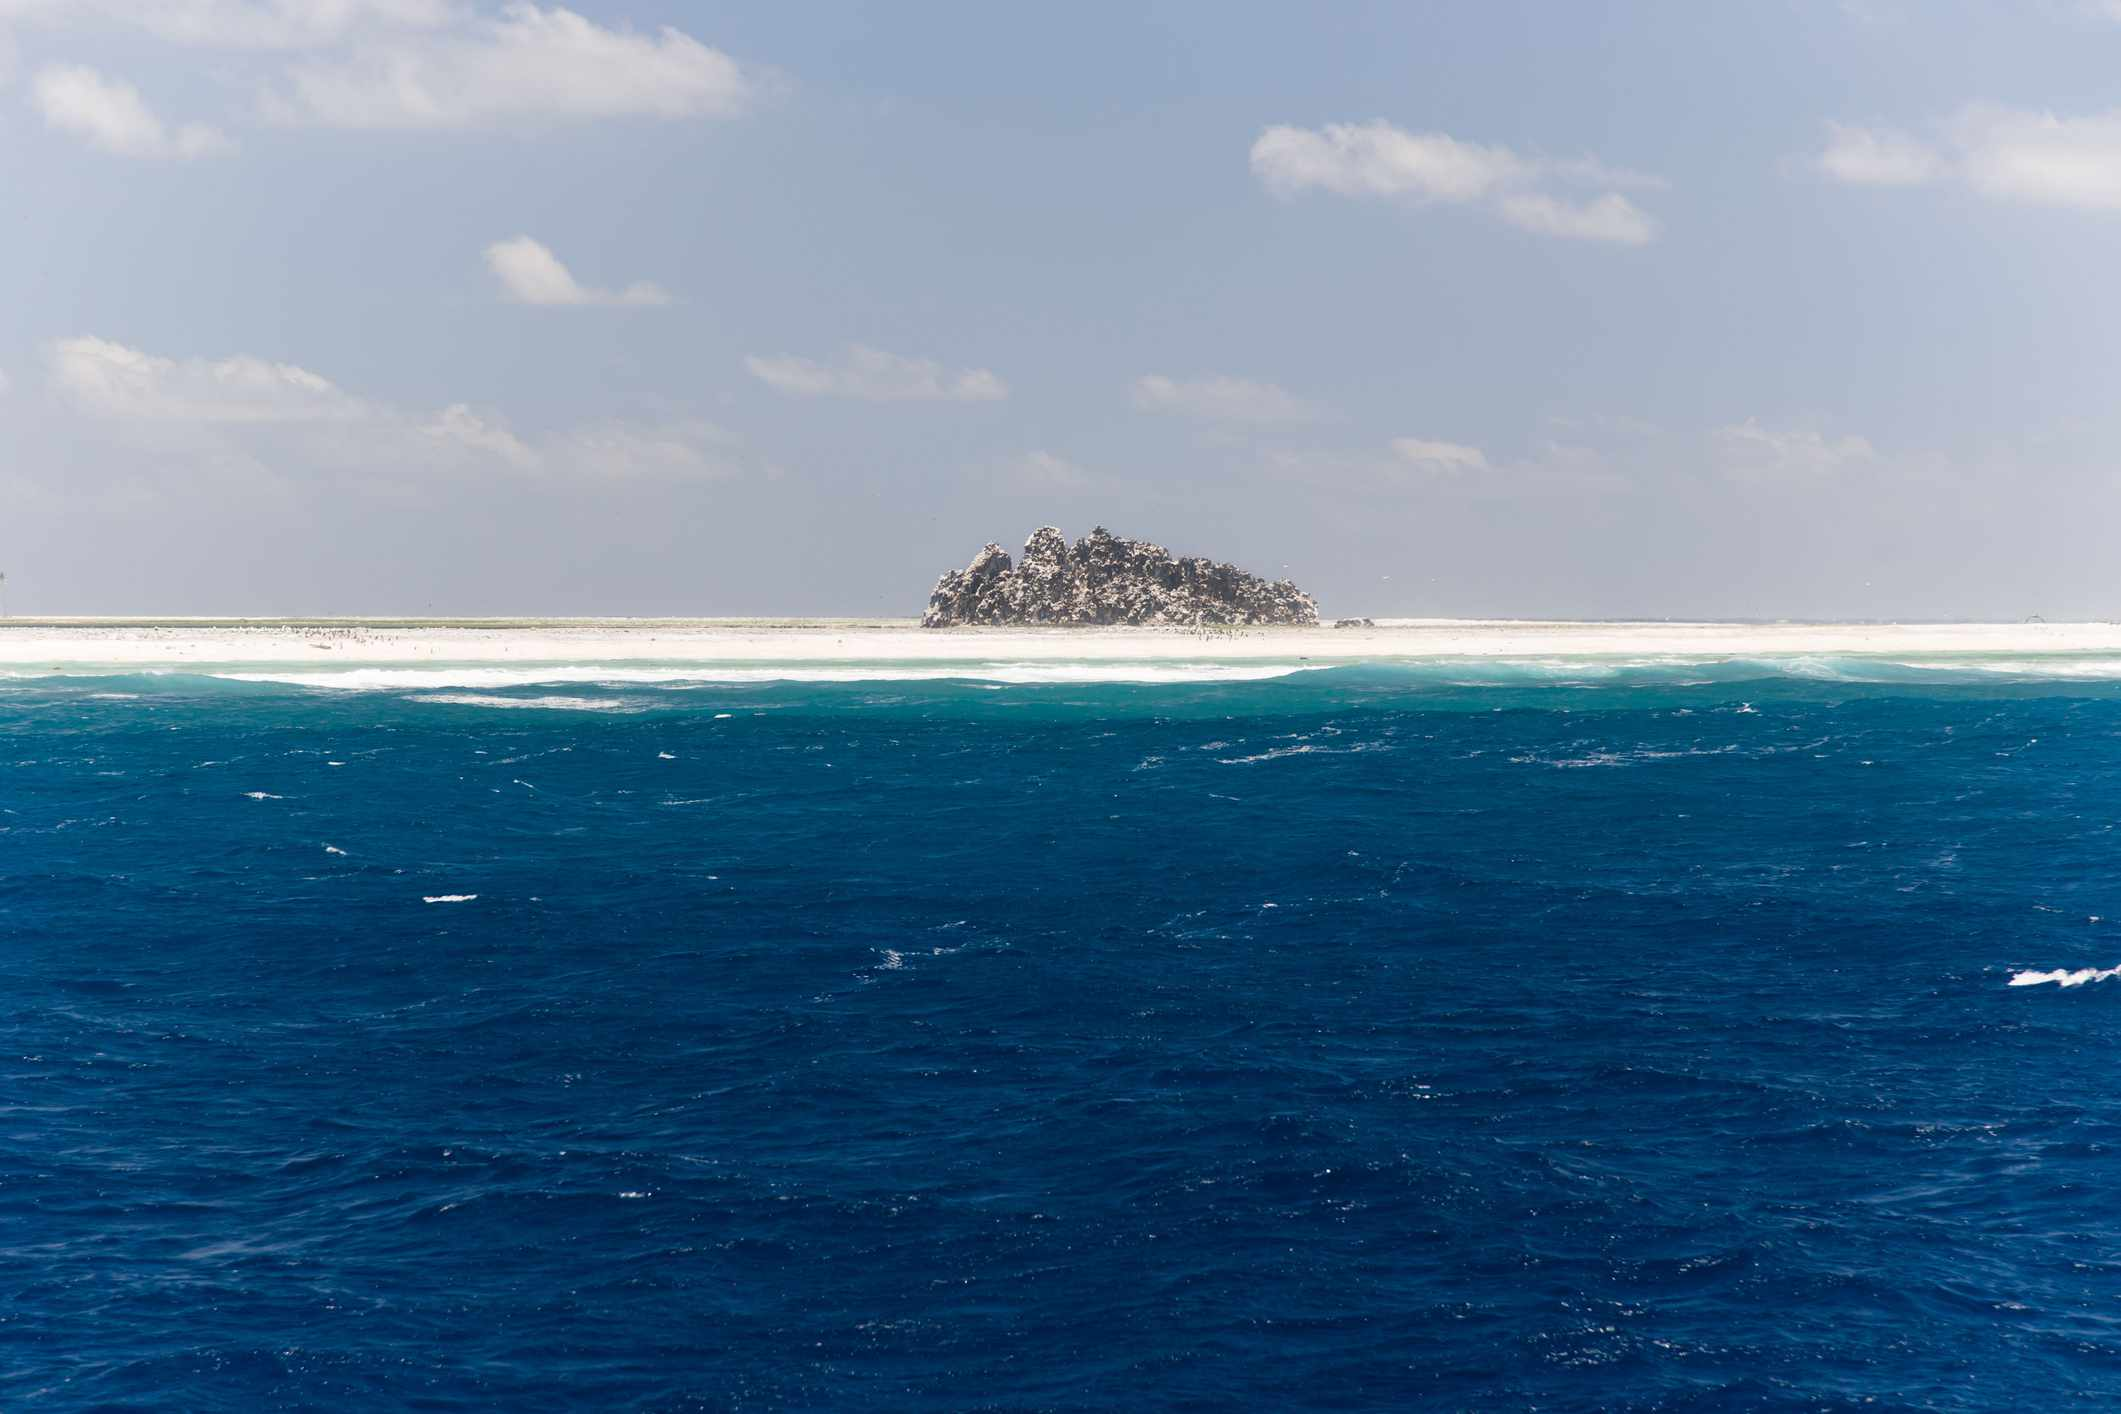 Clipperton Island in the middle of the Pacific Ocean